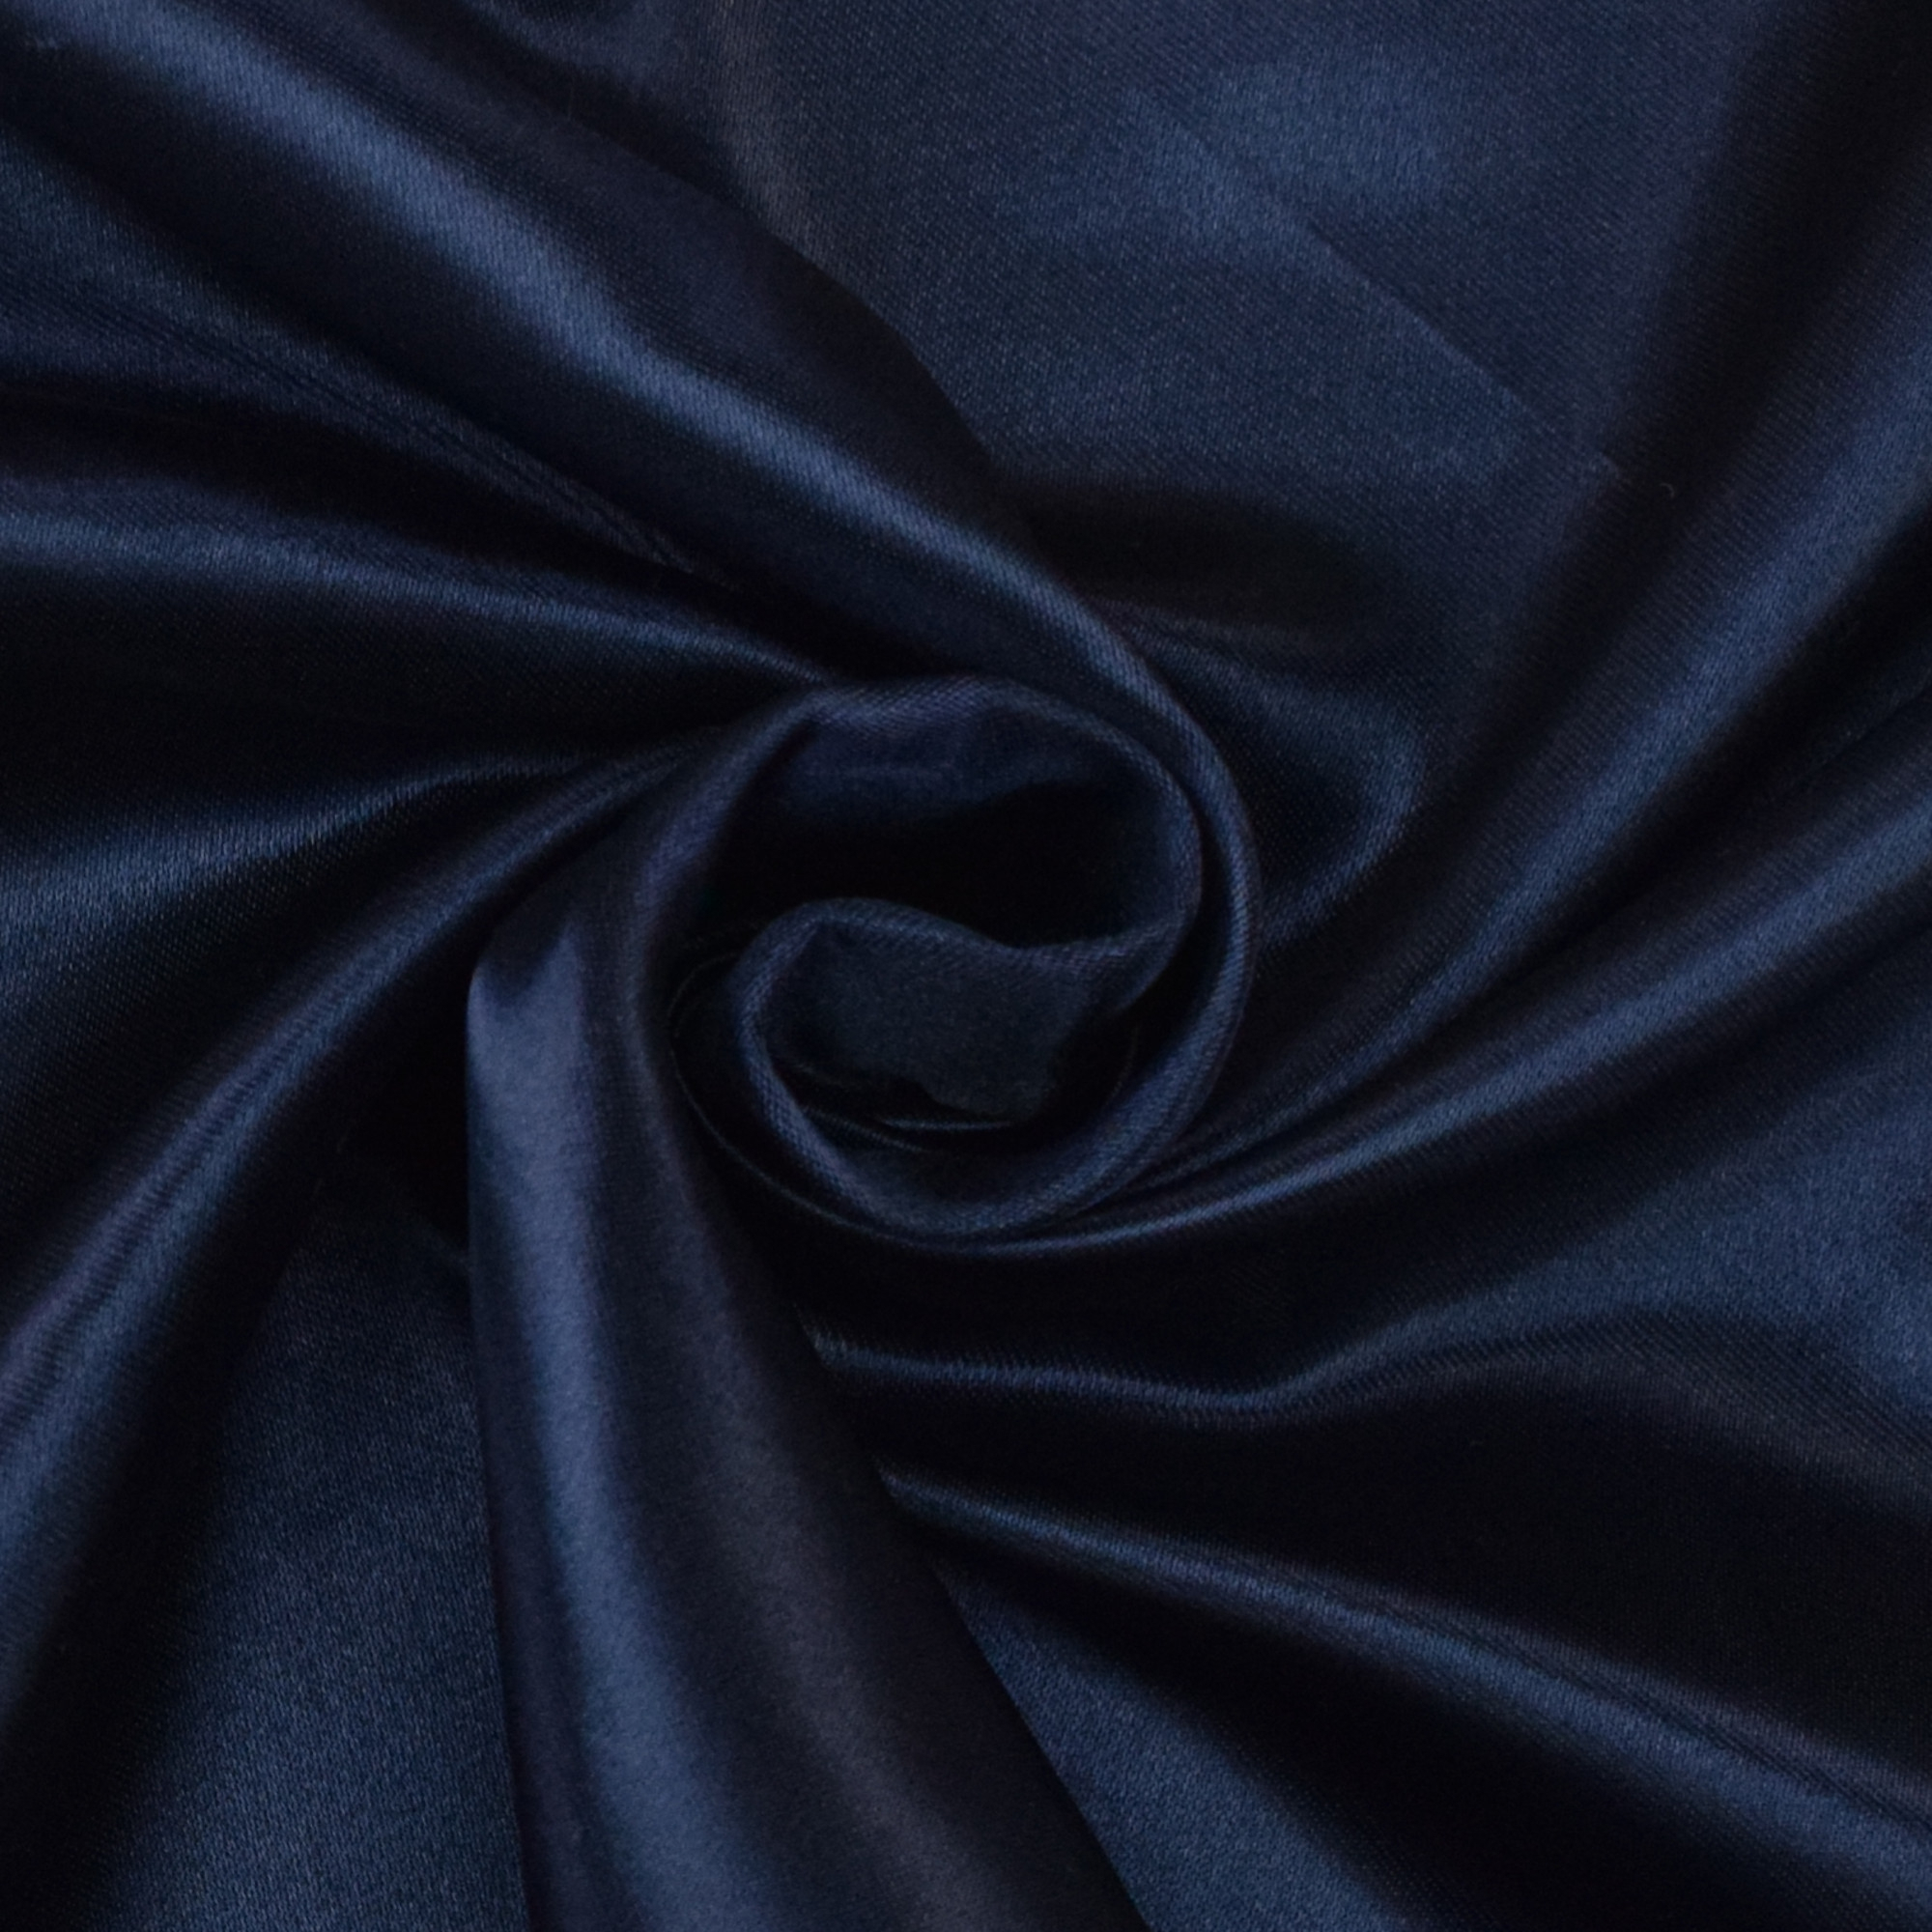 Satin darkblue | 100.145-0292 | blau